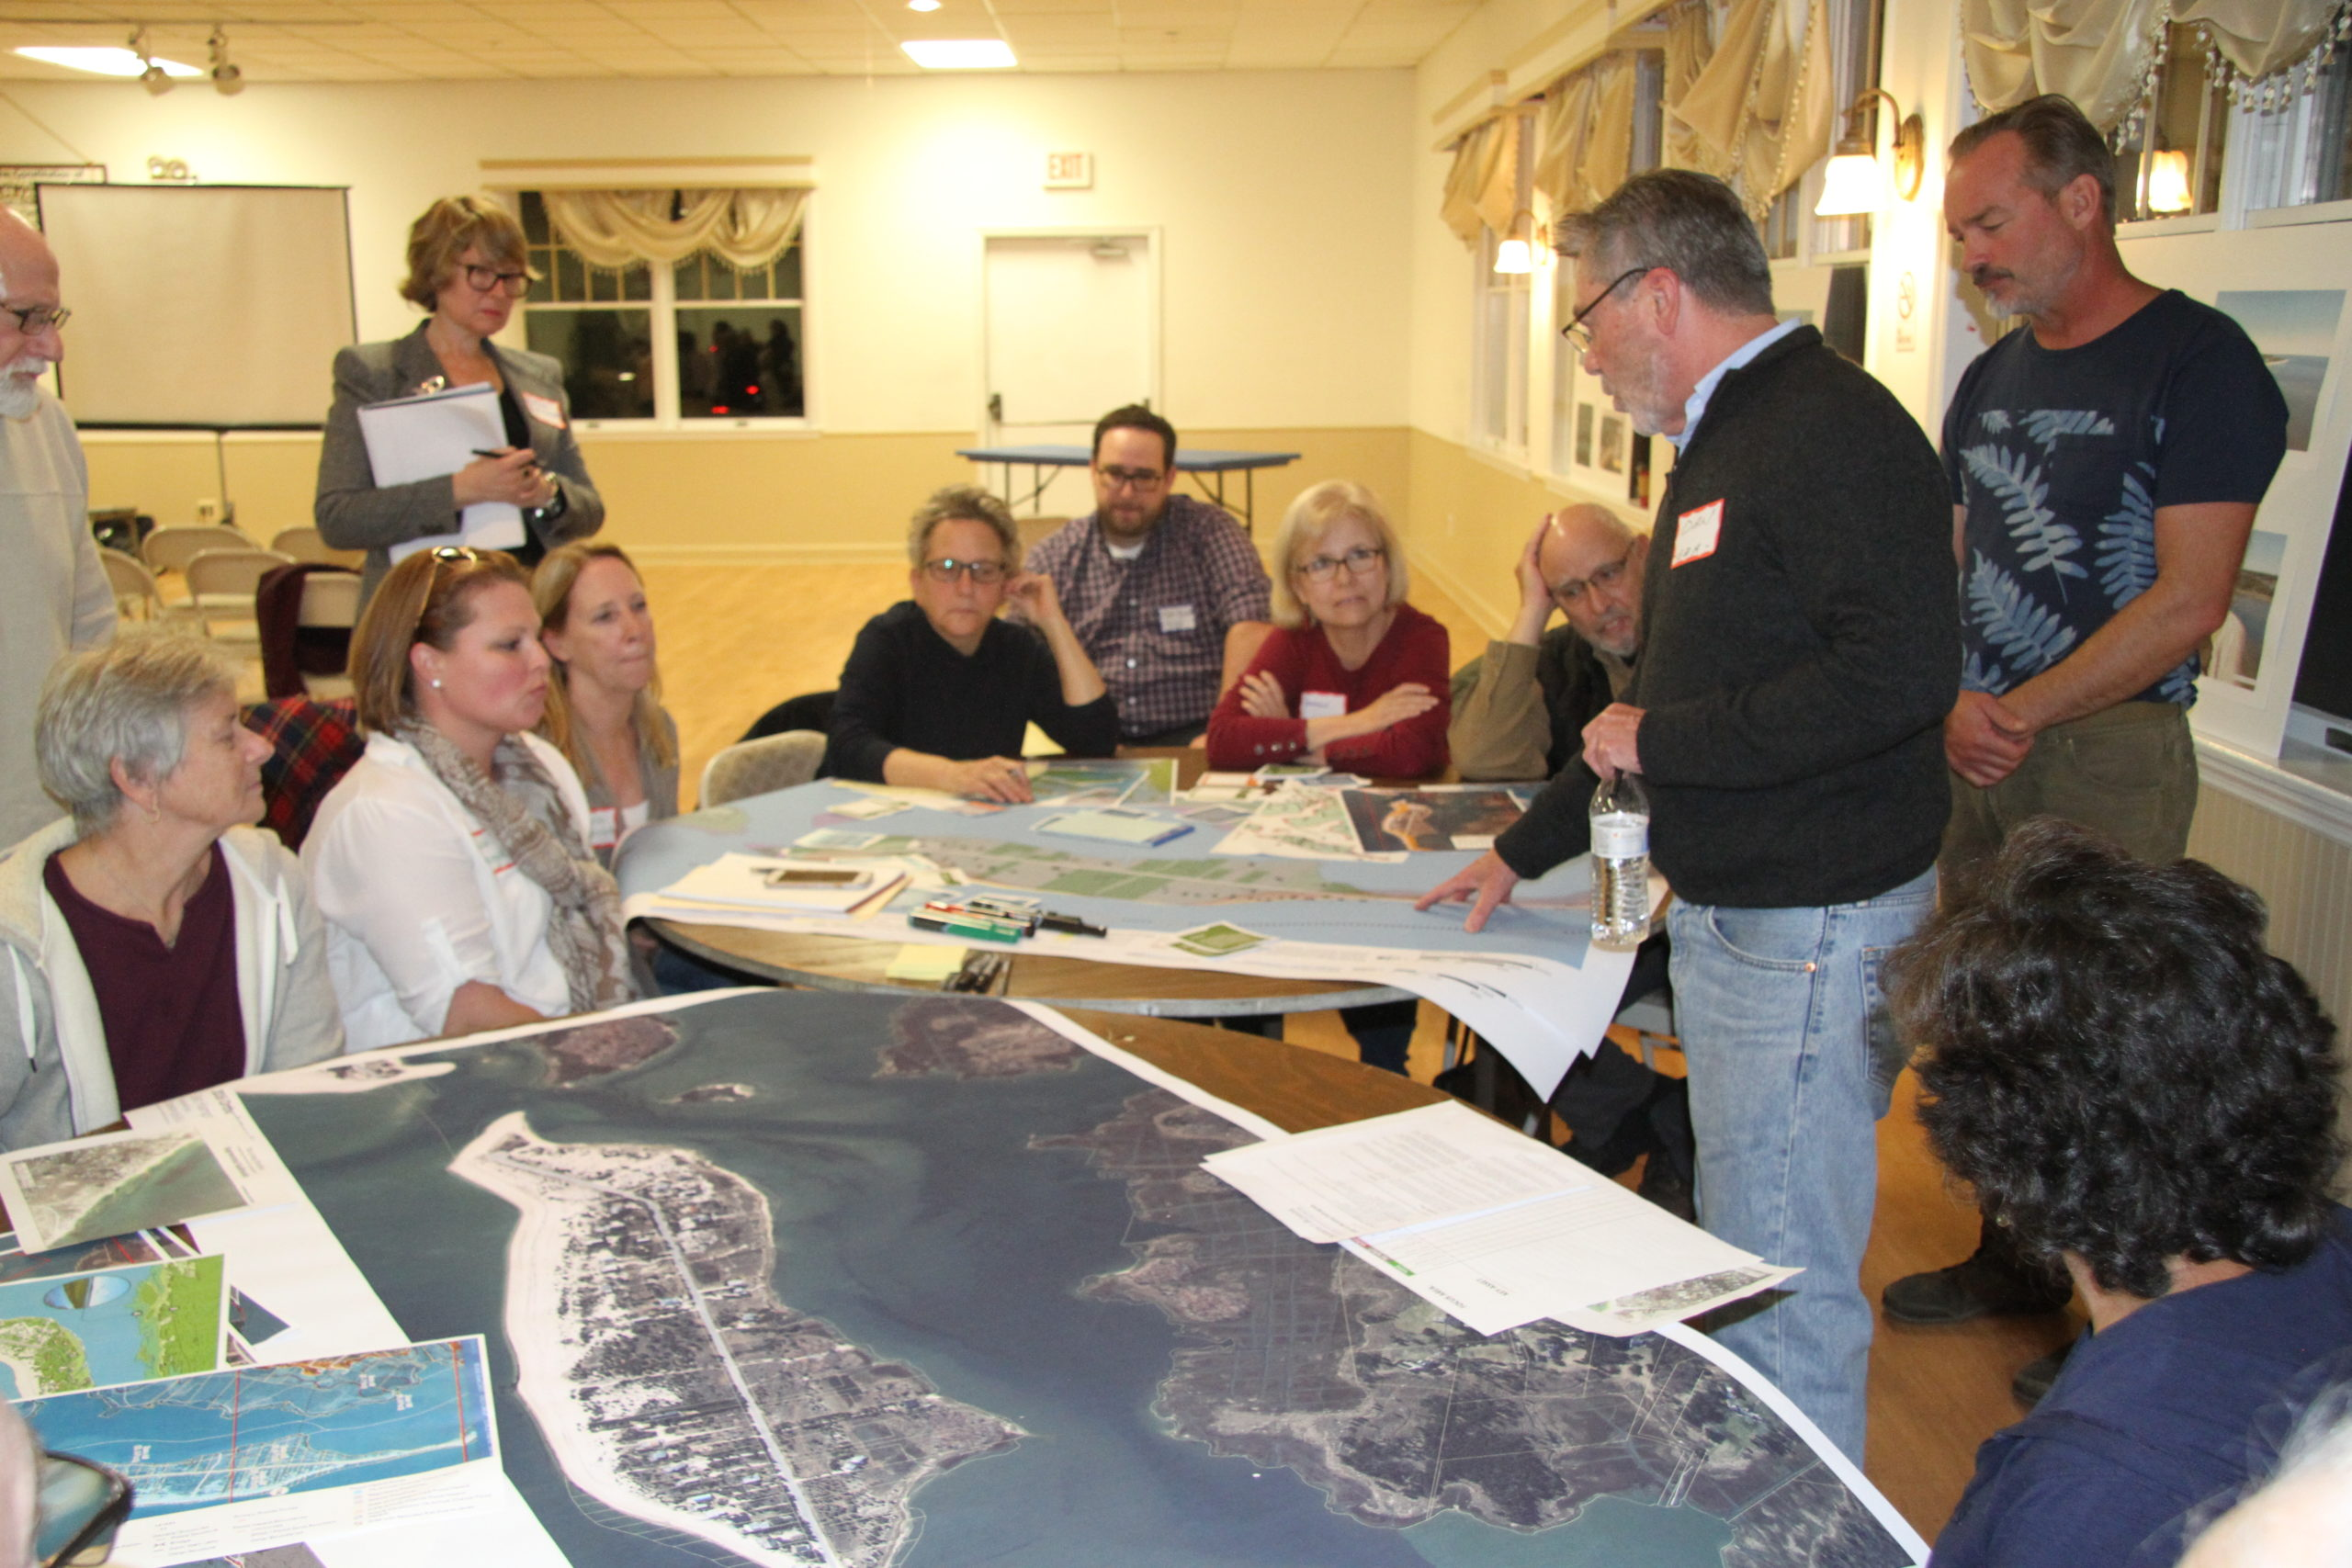 Consultants and residents pored over areas of the town that already face chronic flooding and erosion problems at a work shop in October at the Amagansett American Legion.